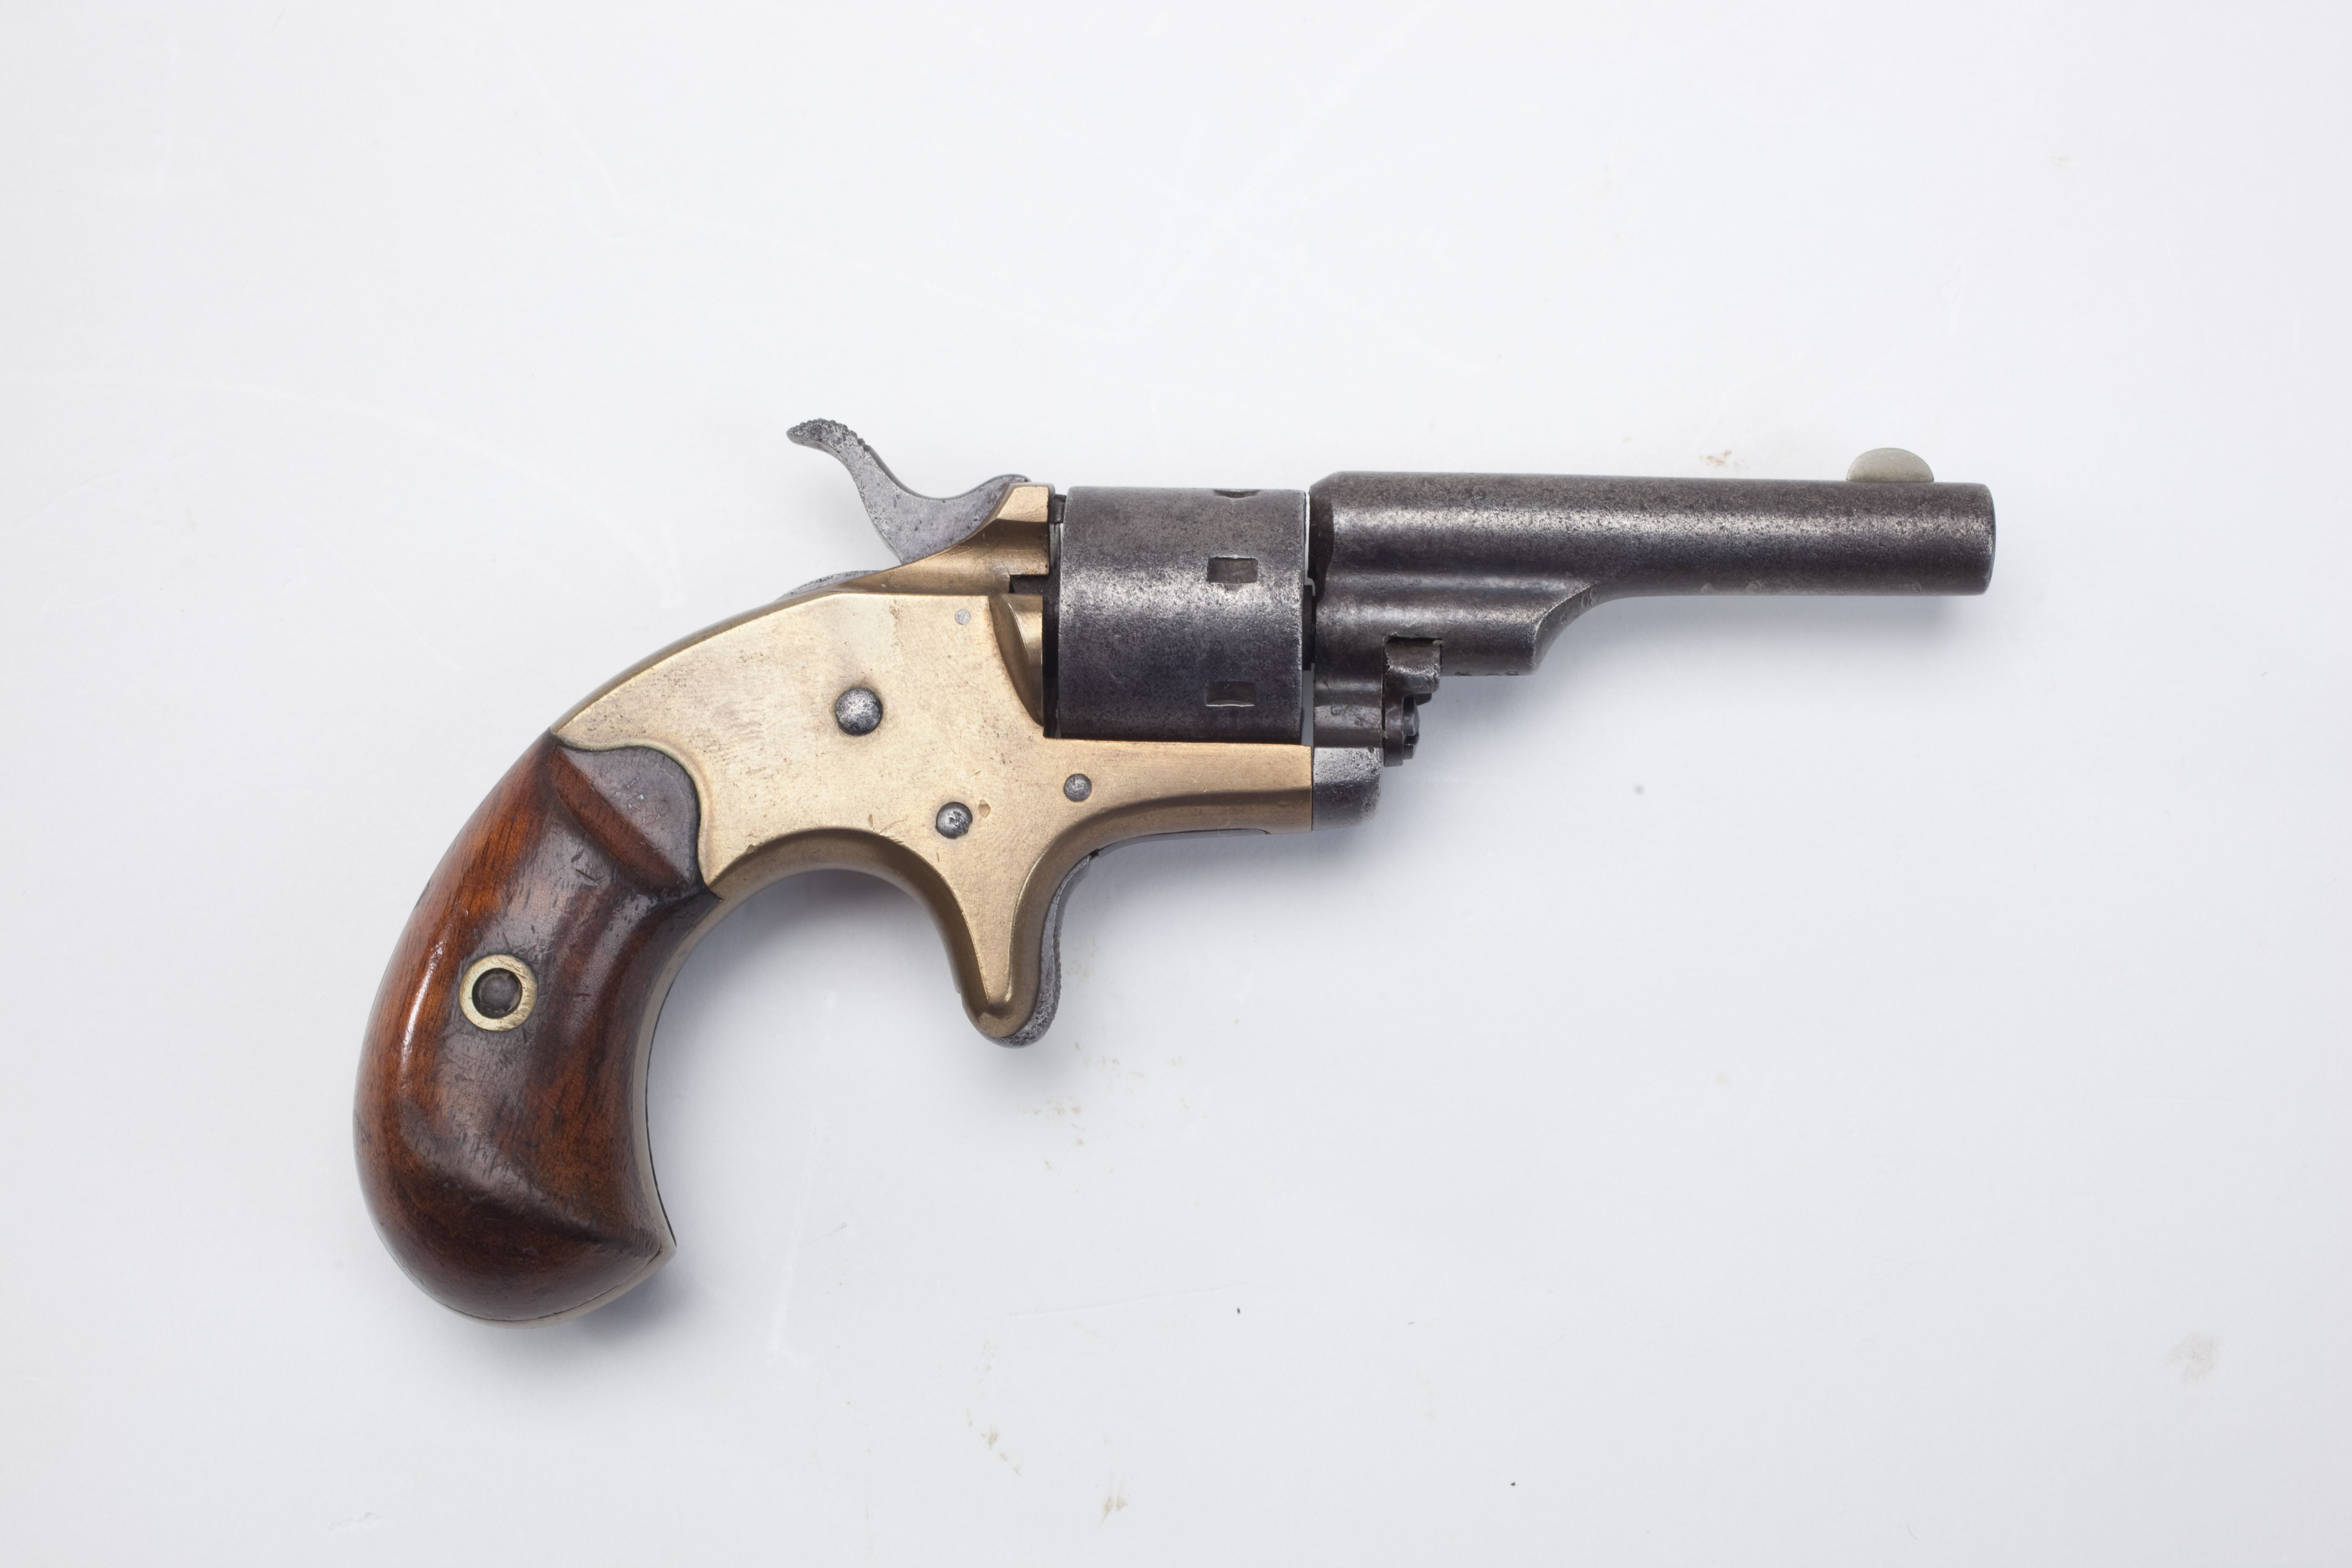 Colt Open Top Pocket Model revolver